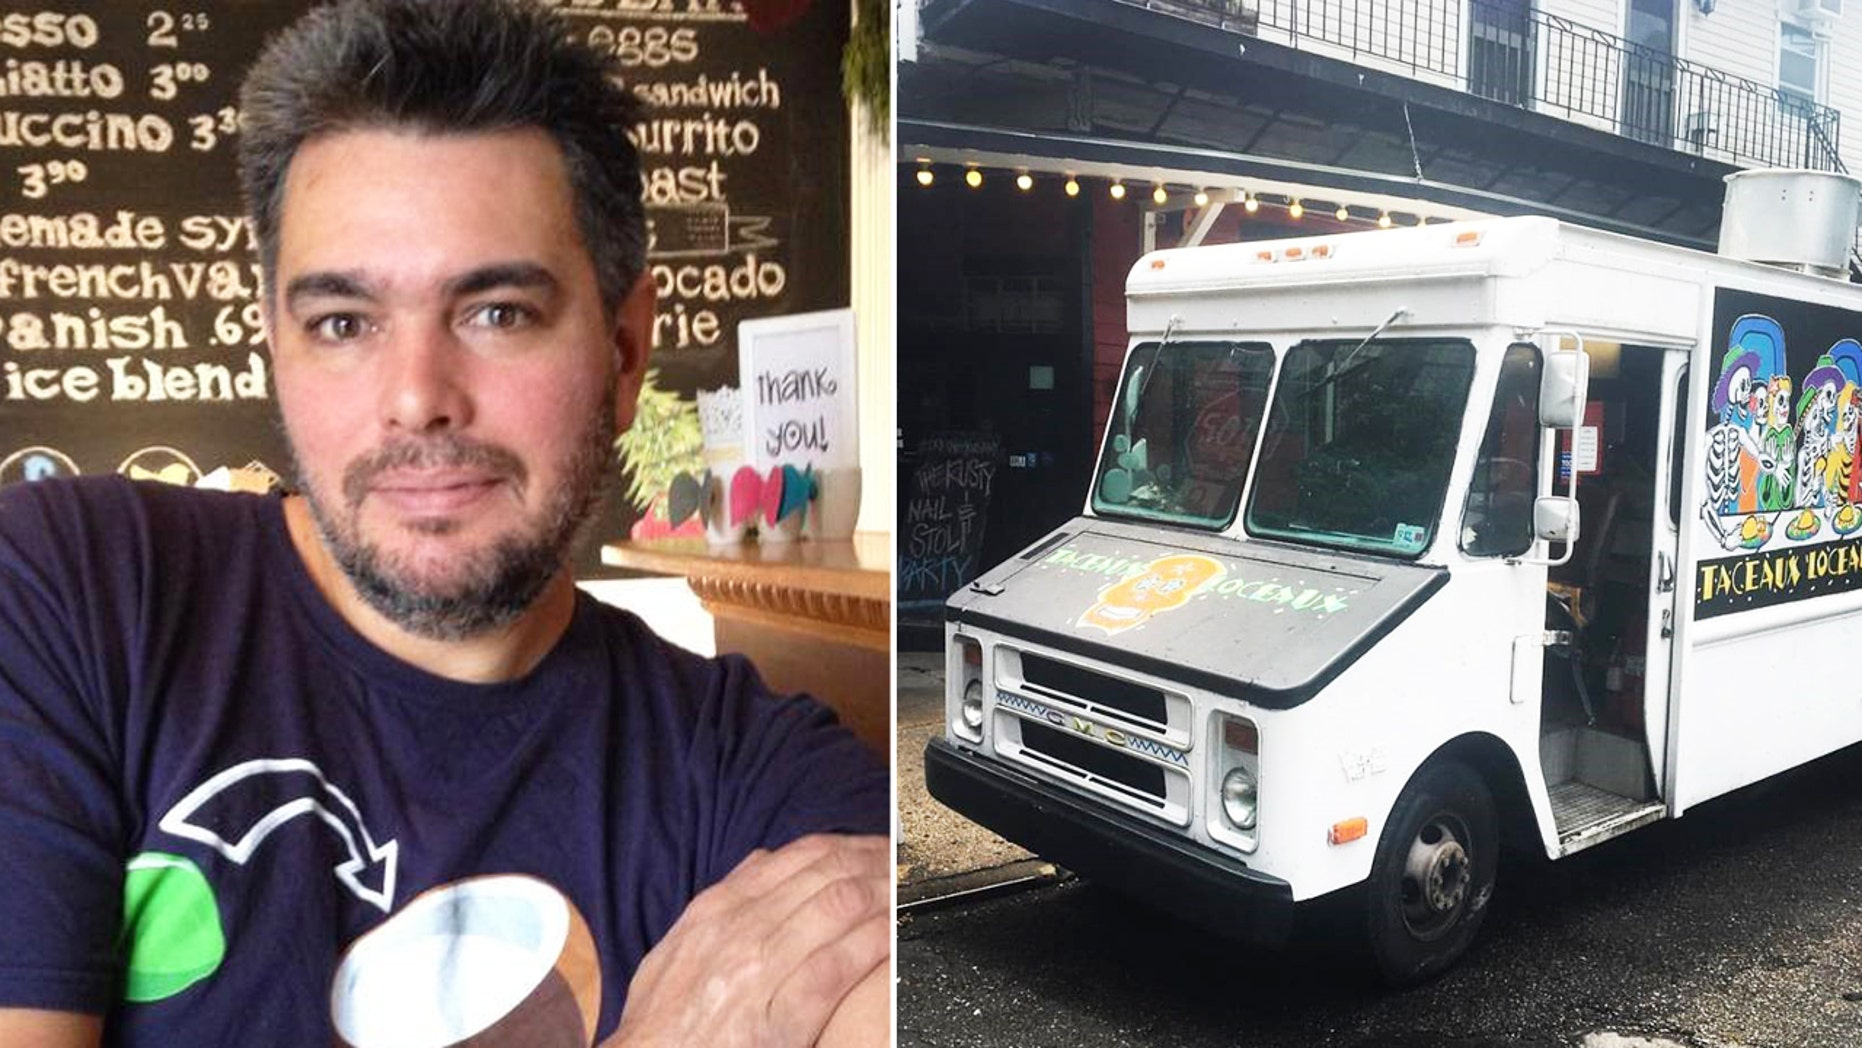 Alex Del Castillo, a former cook in the U.S. Navy, opened his own food truck Taceaux Loceaux in 2009.